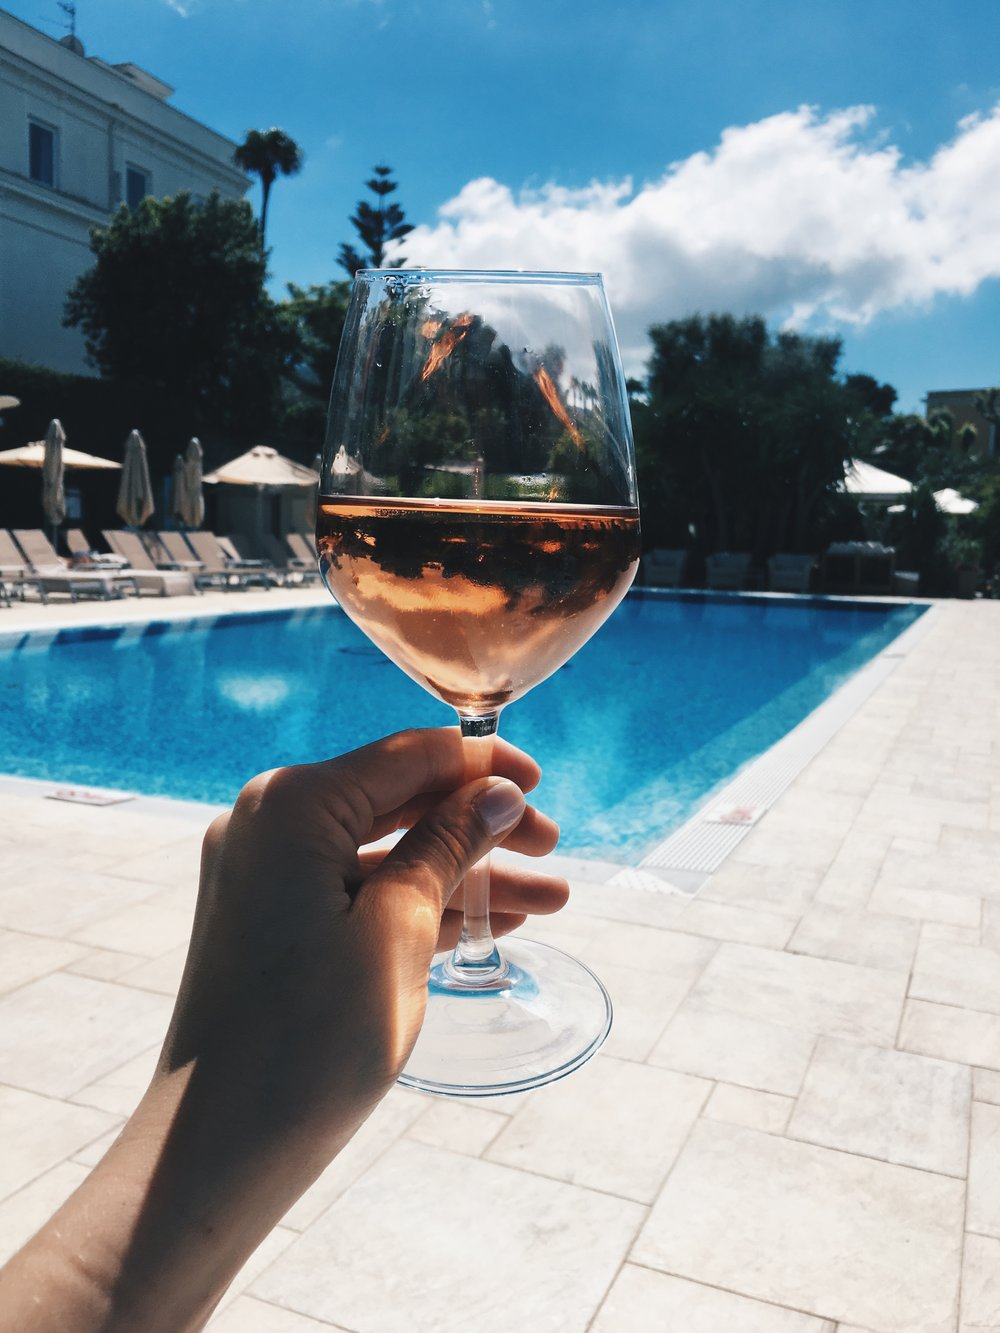 A glass of Rose by the pool.